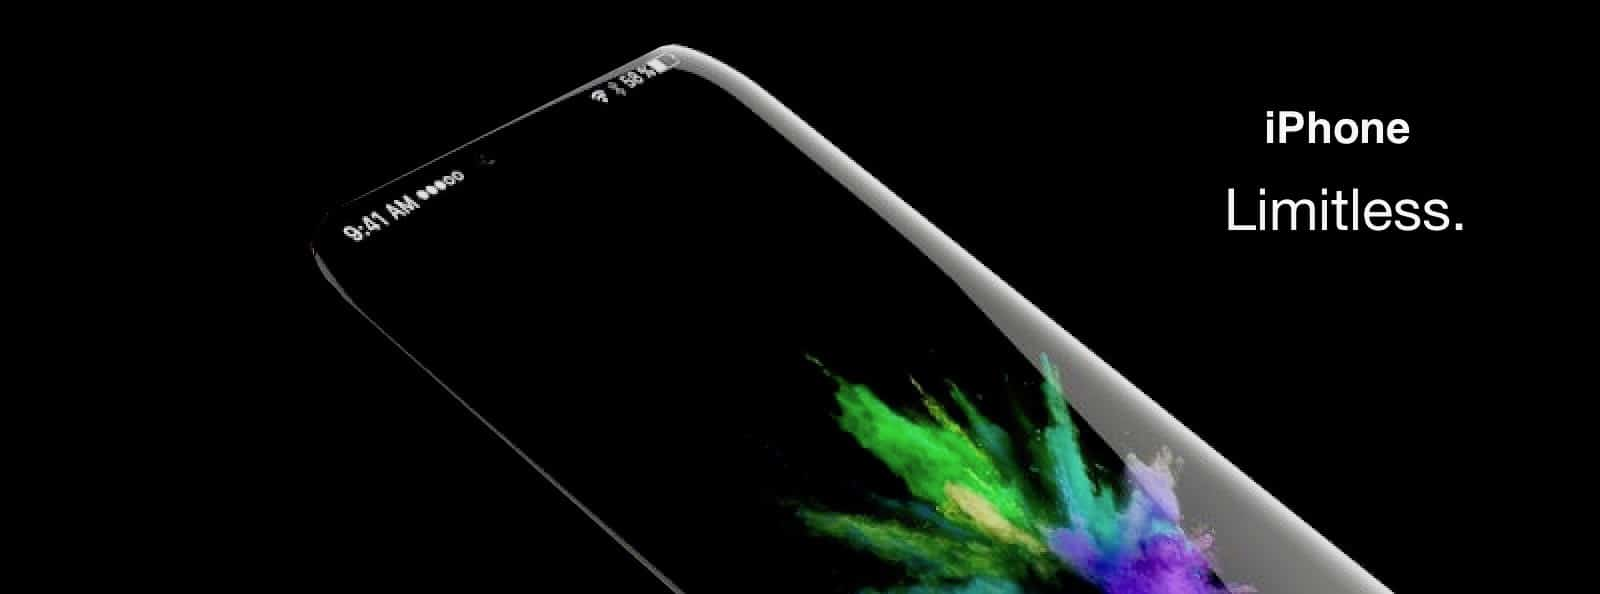 5 Facts About iPhone X